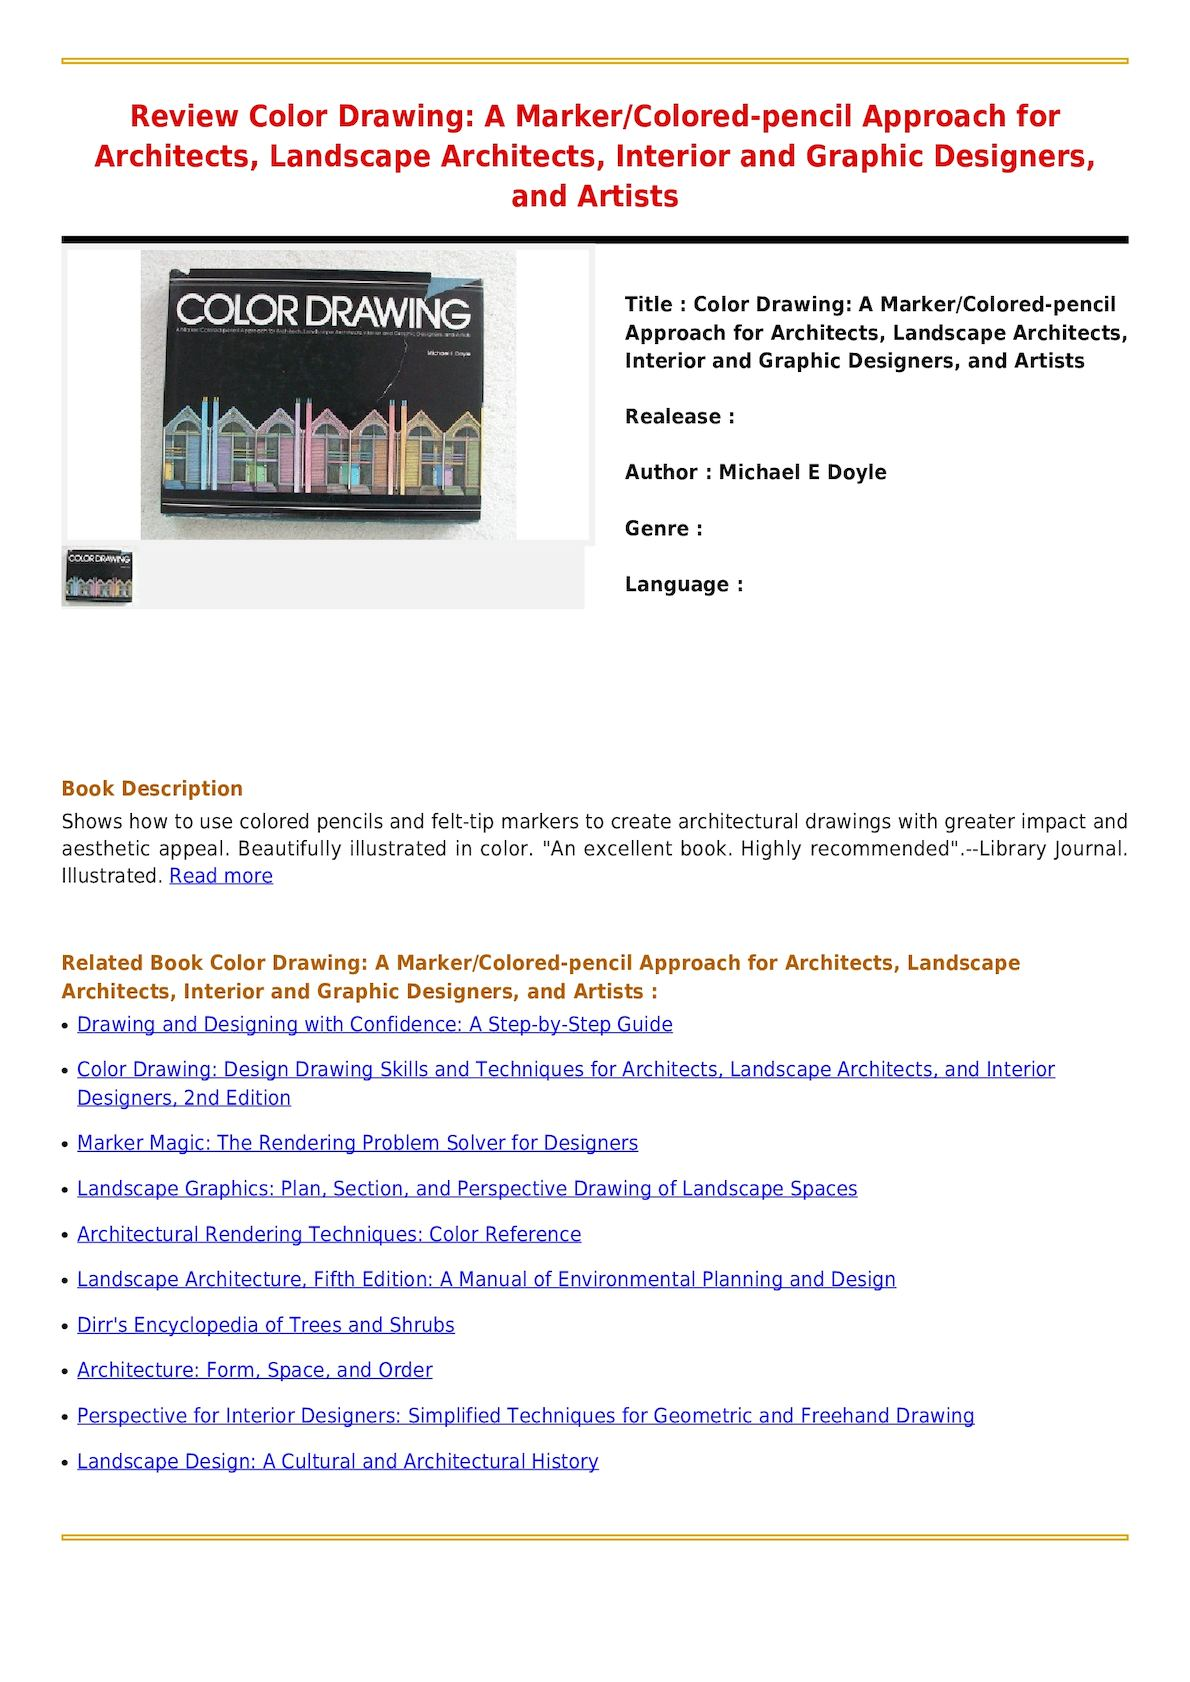 Calameo Read Online Color Drawing A Marker Colored Pencil Approach For Architects Landscape Architects Interior And Graphic Designers And Artists